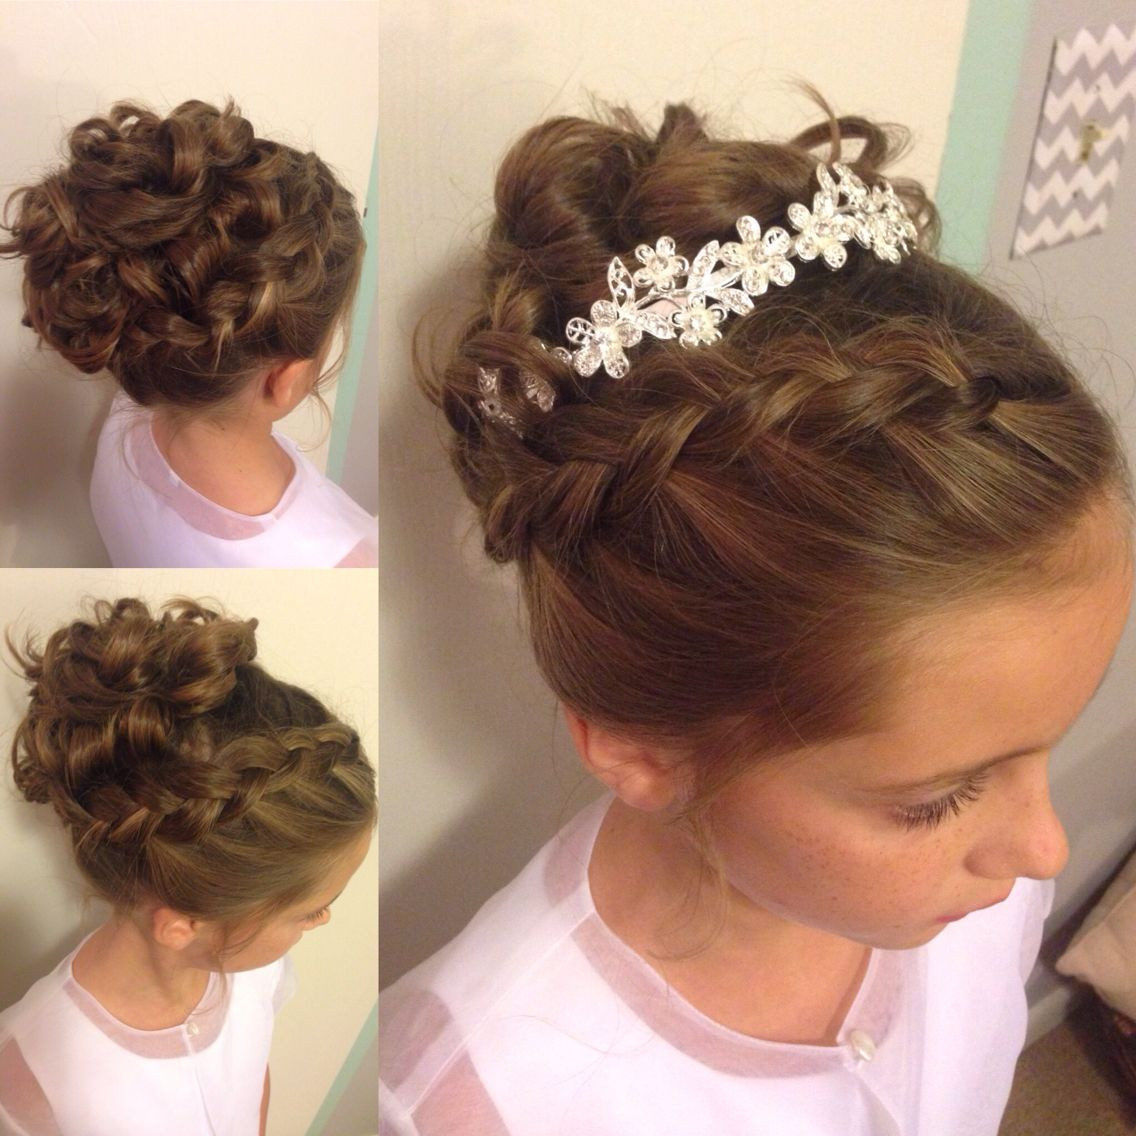 Best ideas about Wedding Hairstyles For Toddlers . Save or Pin Little girl updo Wedding hairstyle Instagram Now.